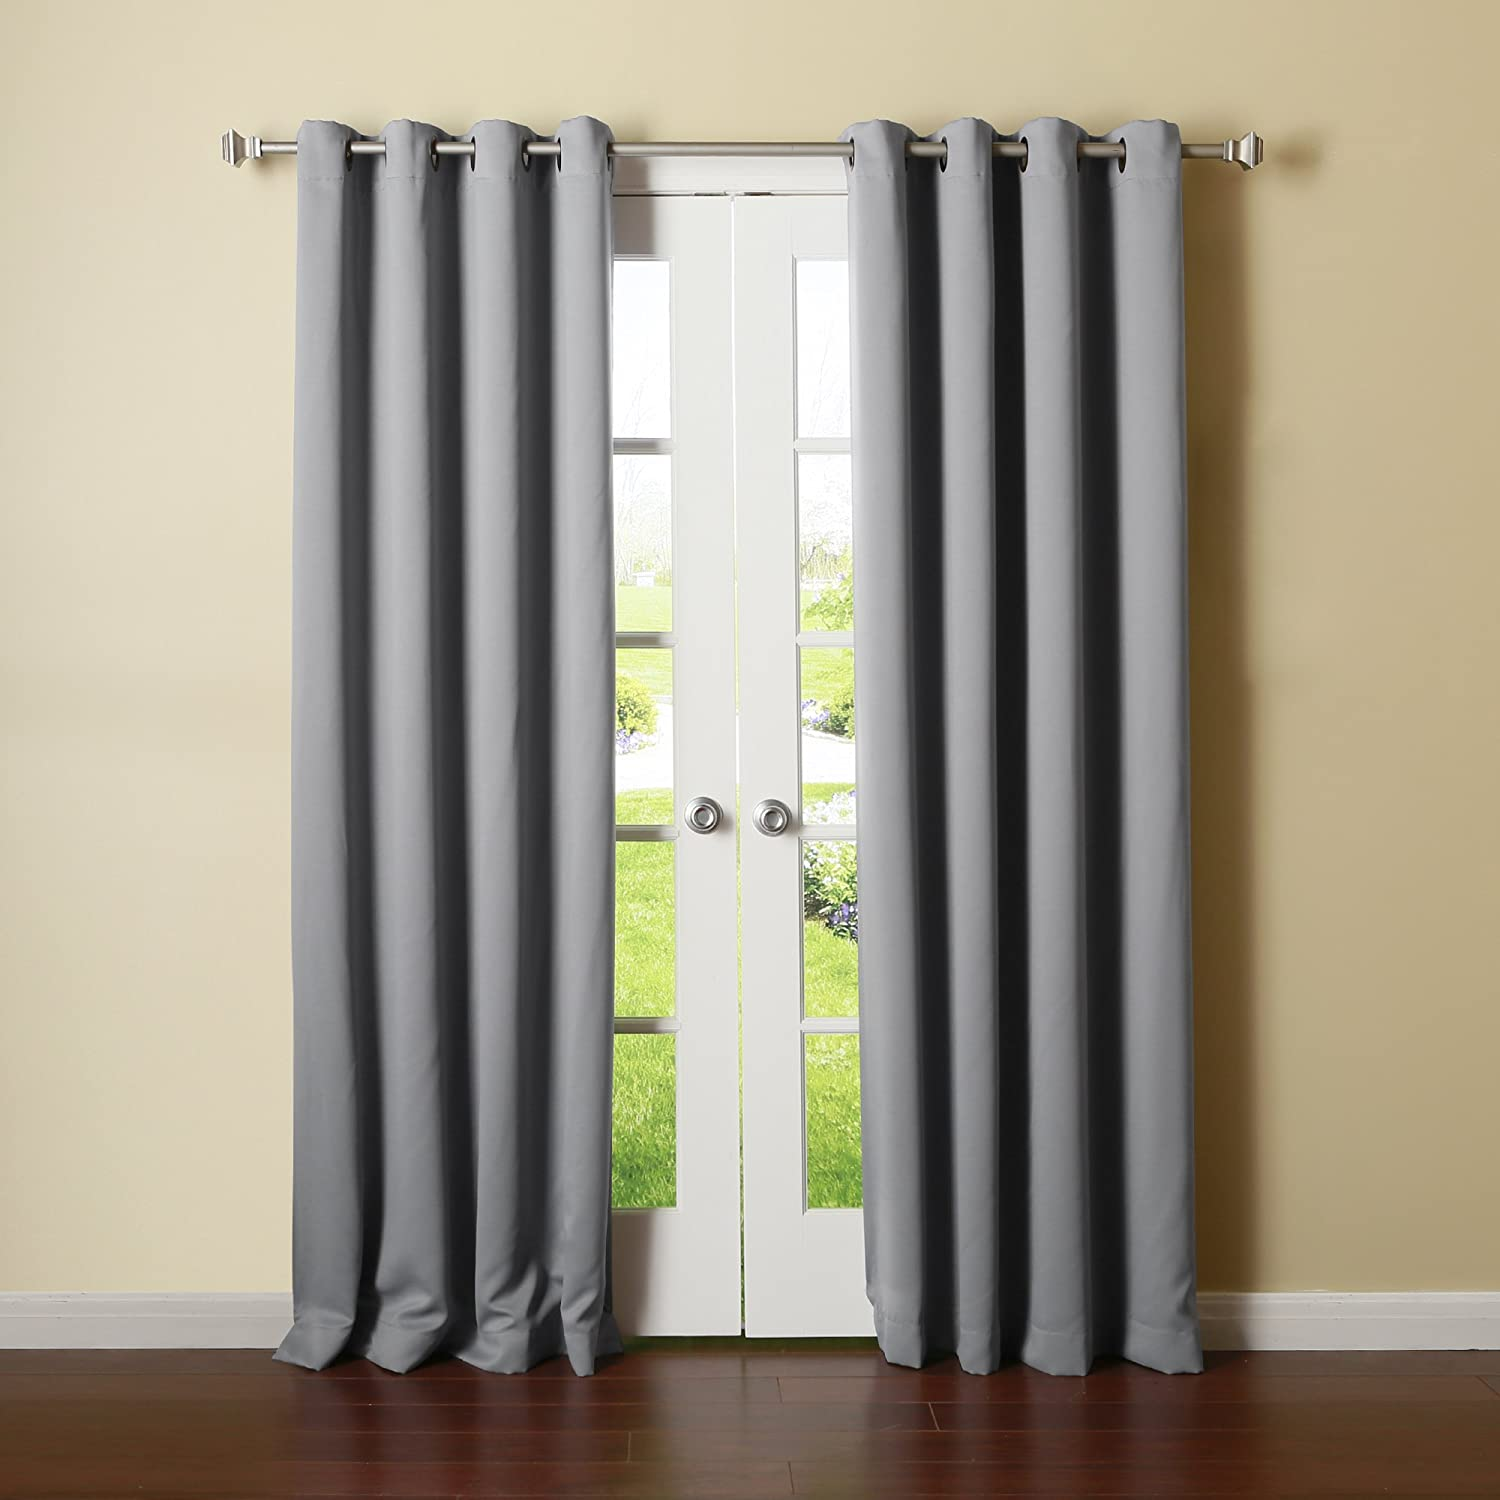 Thermal curtains grey - Amazon Com Best Home Fashion Thermal Insulated Blackout Curtains Antique Bronze Grommet Top Grey 52 W X 84 L Set Of 2 Panels Home Kitchen